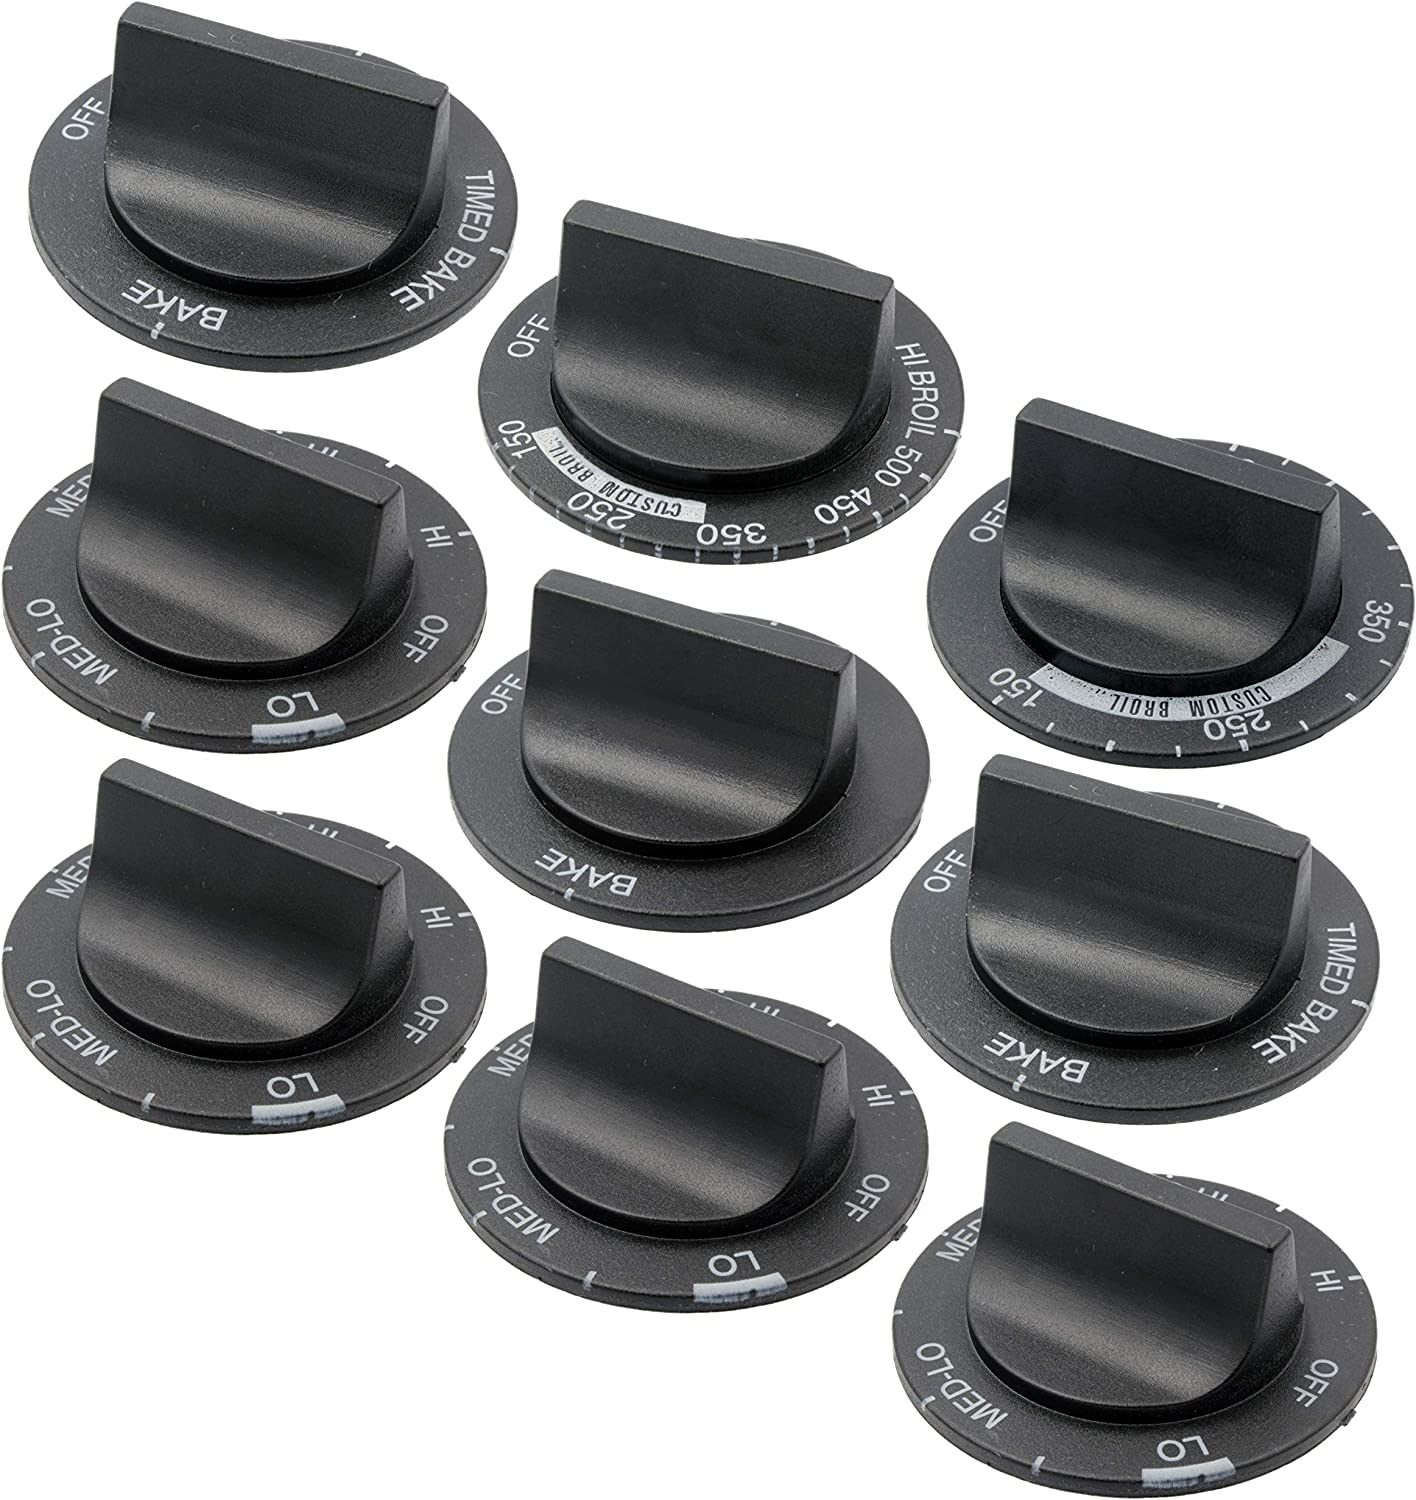 Supplying Demand 814362 9 Piece Range Knob Kit Compatible With Whirlpool Fits EA389194, PS389194